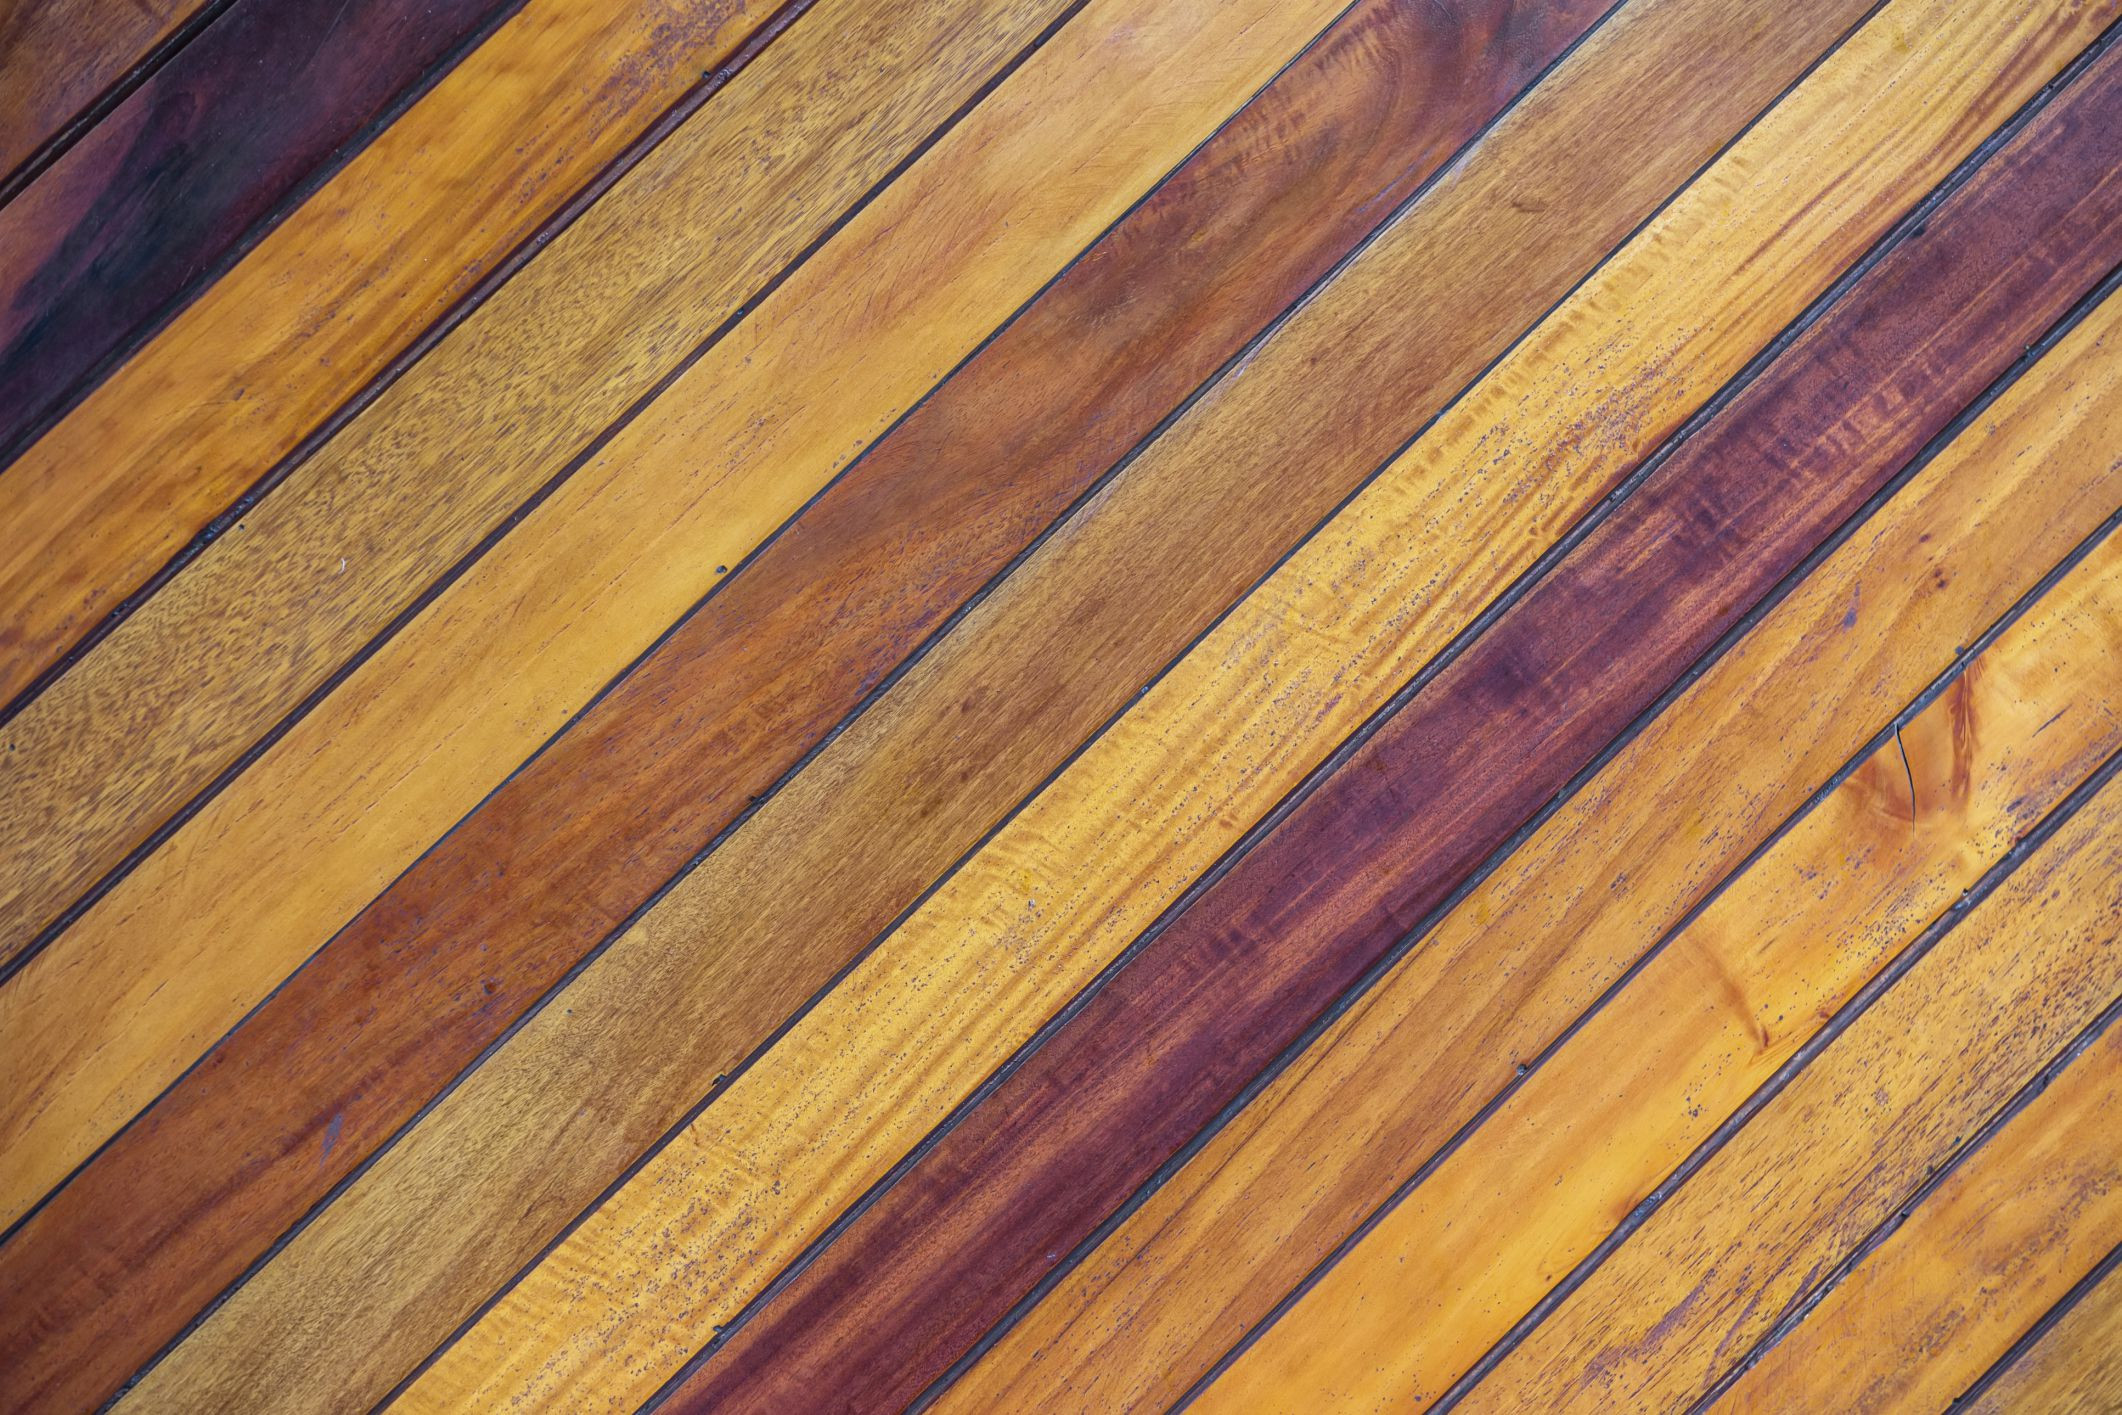 cost to install hardwood floors on concrete of subfloor repair and floor leveling techniques for uneven wooden flooring 170024909 56a4a1853df78cf7728353ab